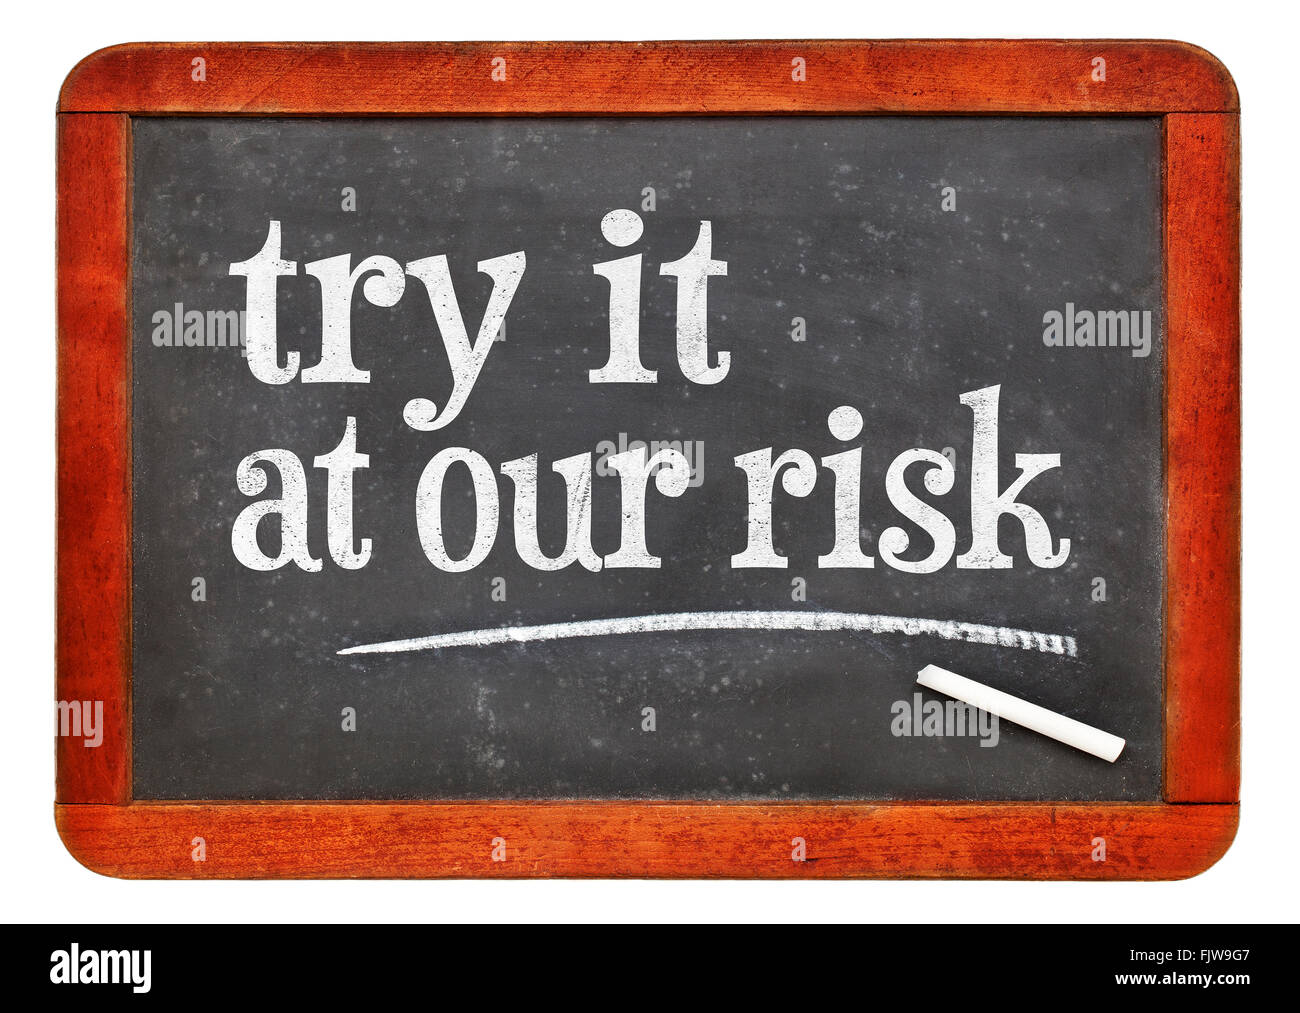 try at out risk marketing slogan - white chalk text on a vintage slate blackboard - Stock Image